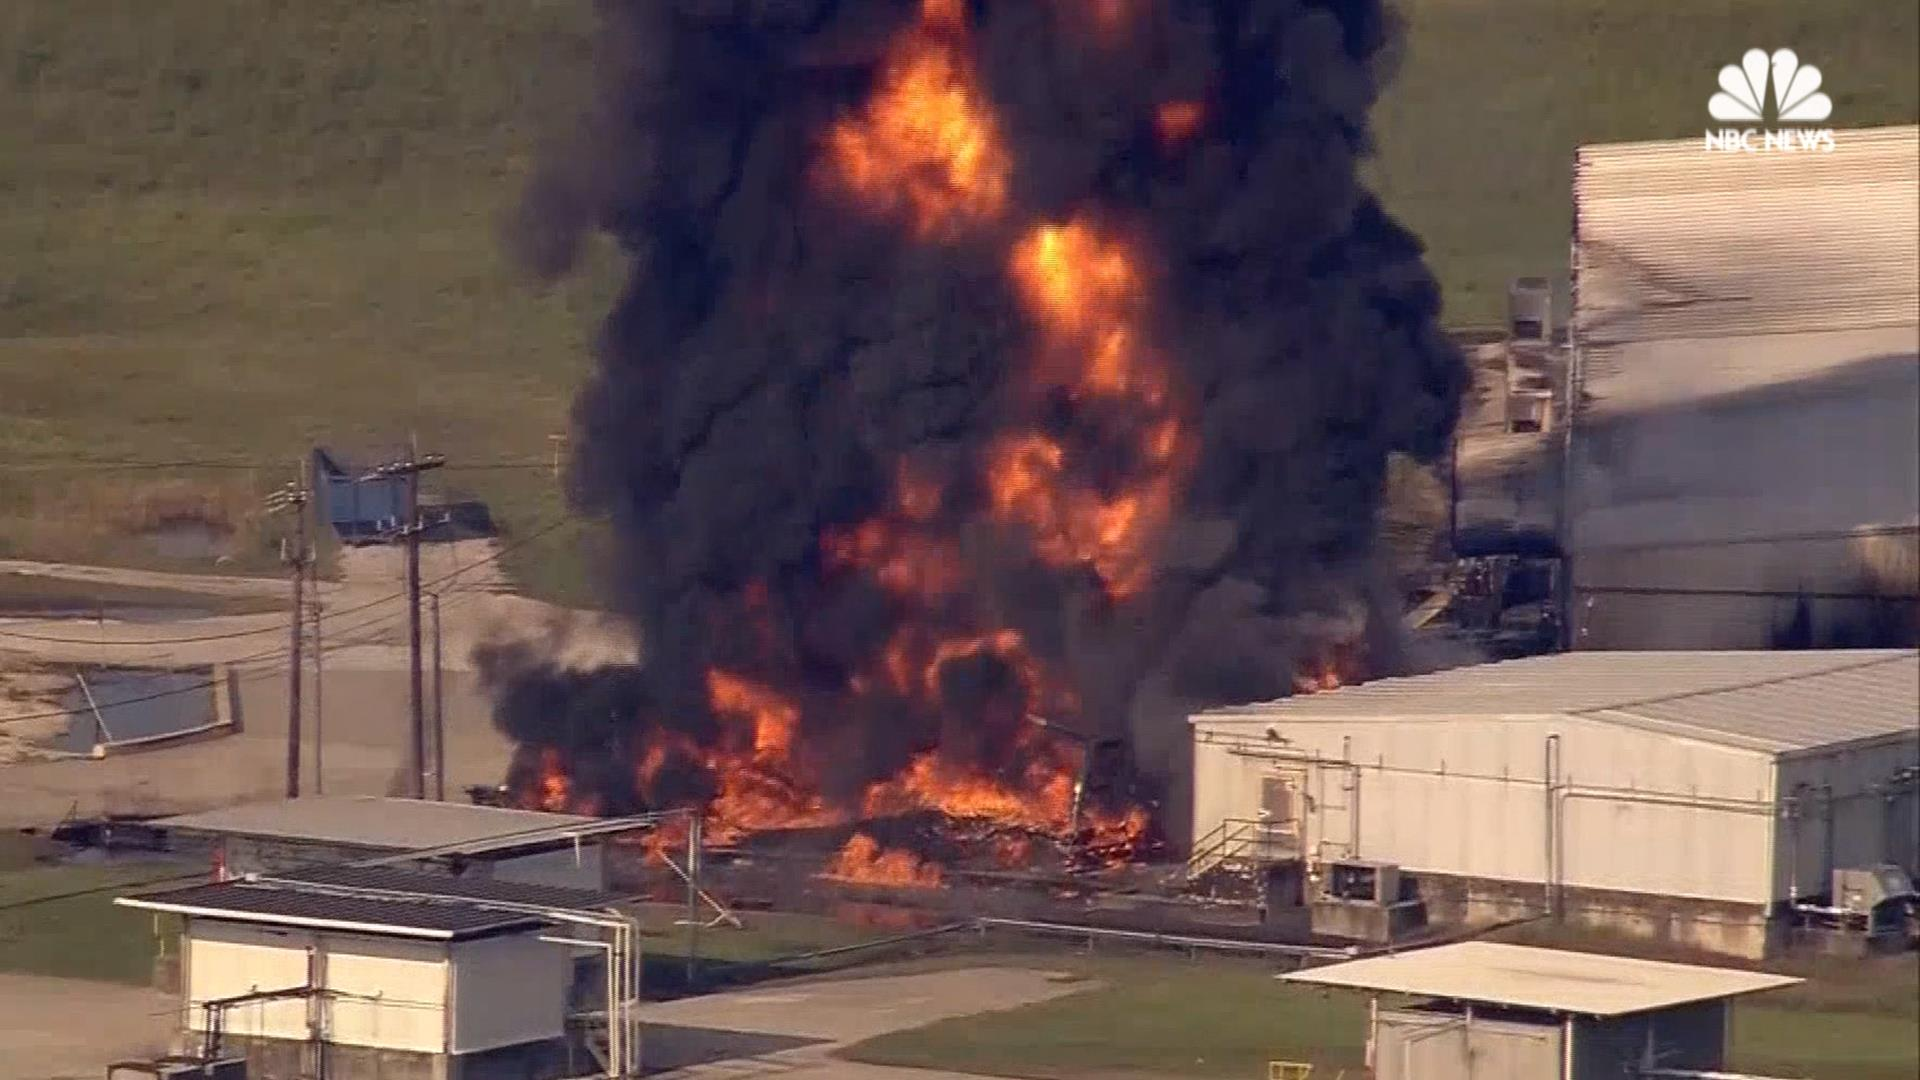 Plant Chemical Components : Flooded texas chemical plant catches fire nbc news